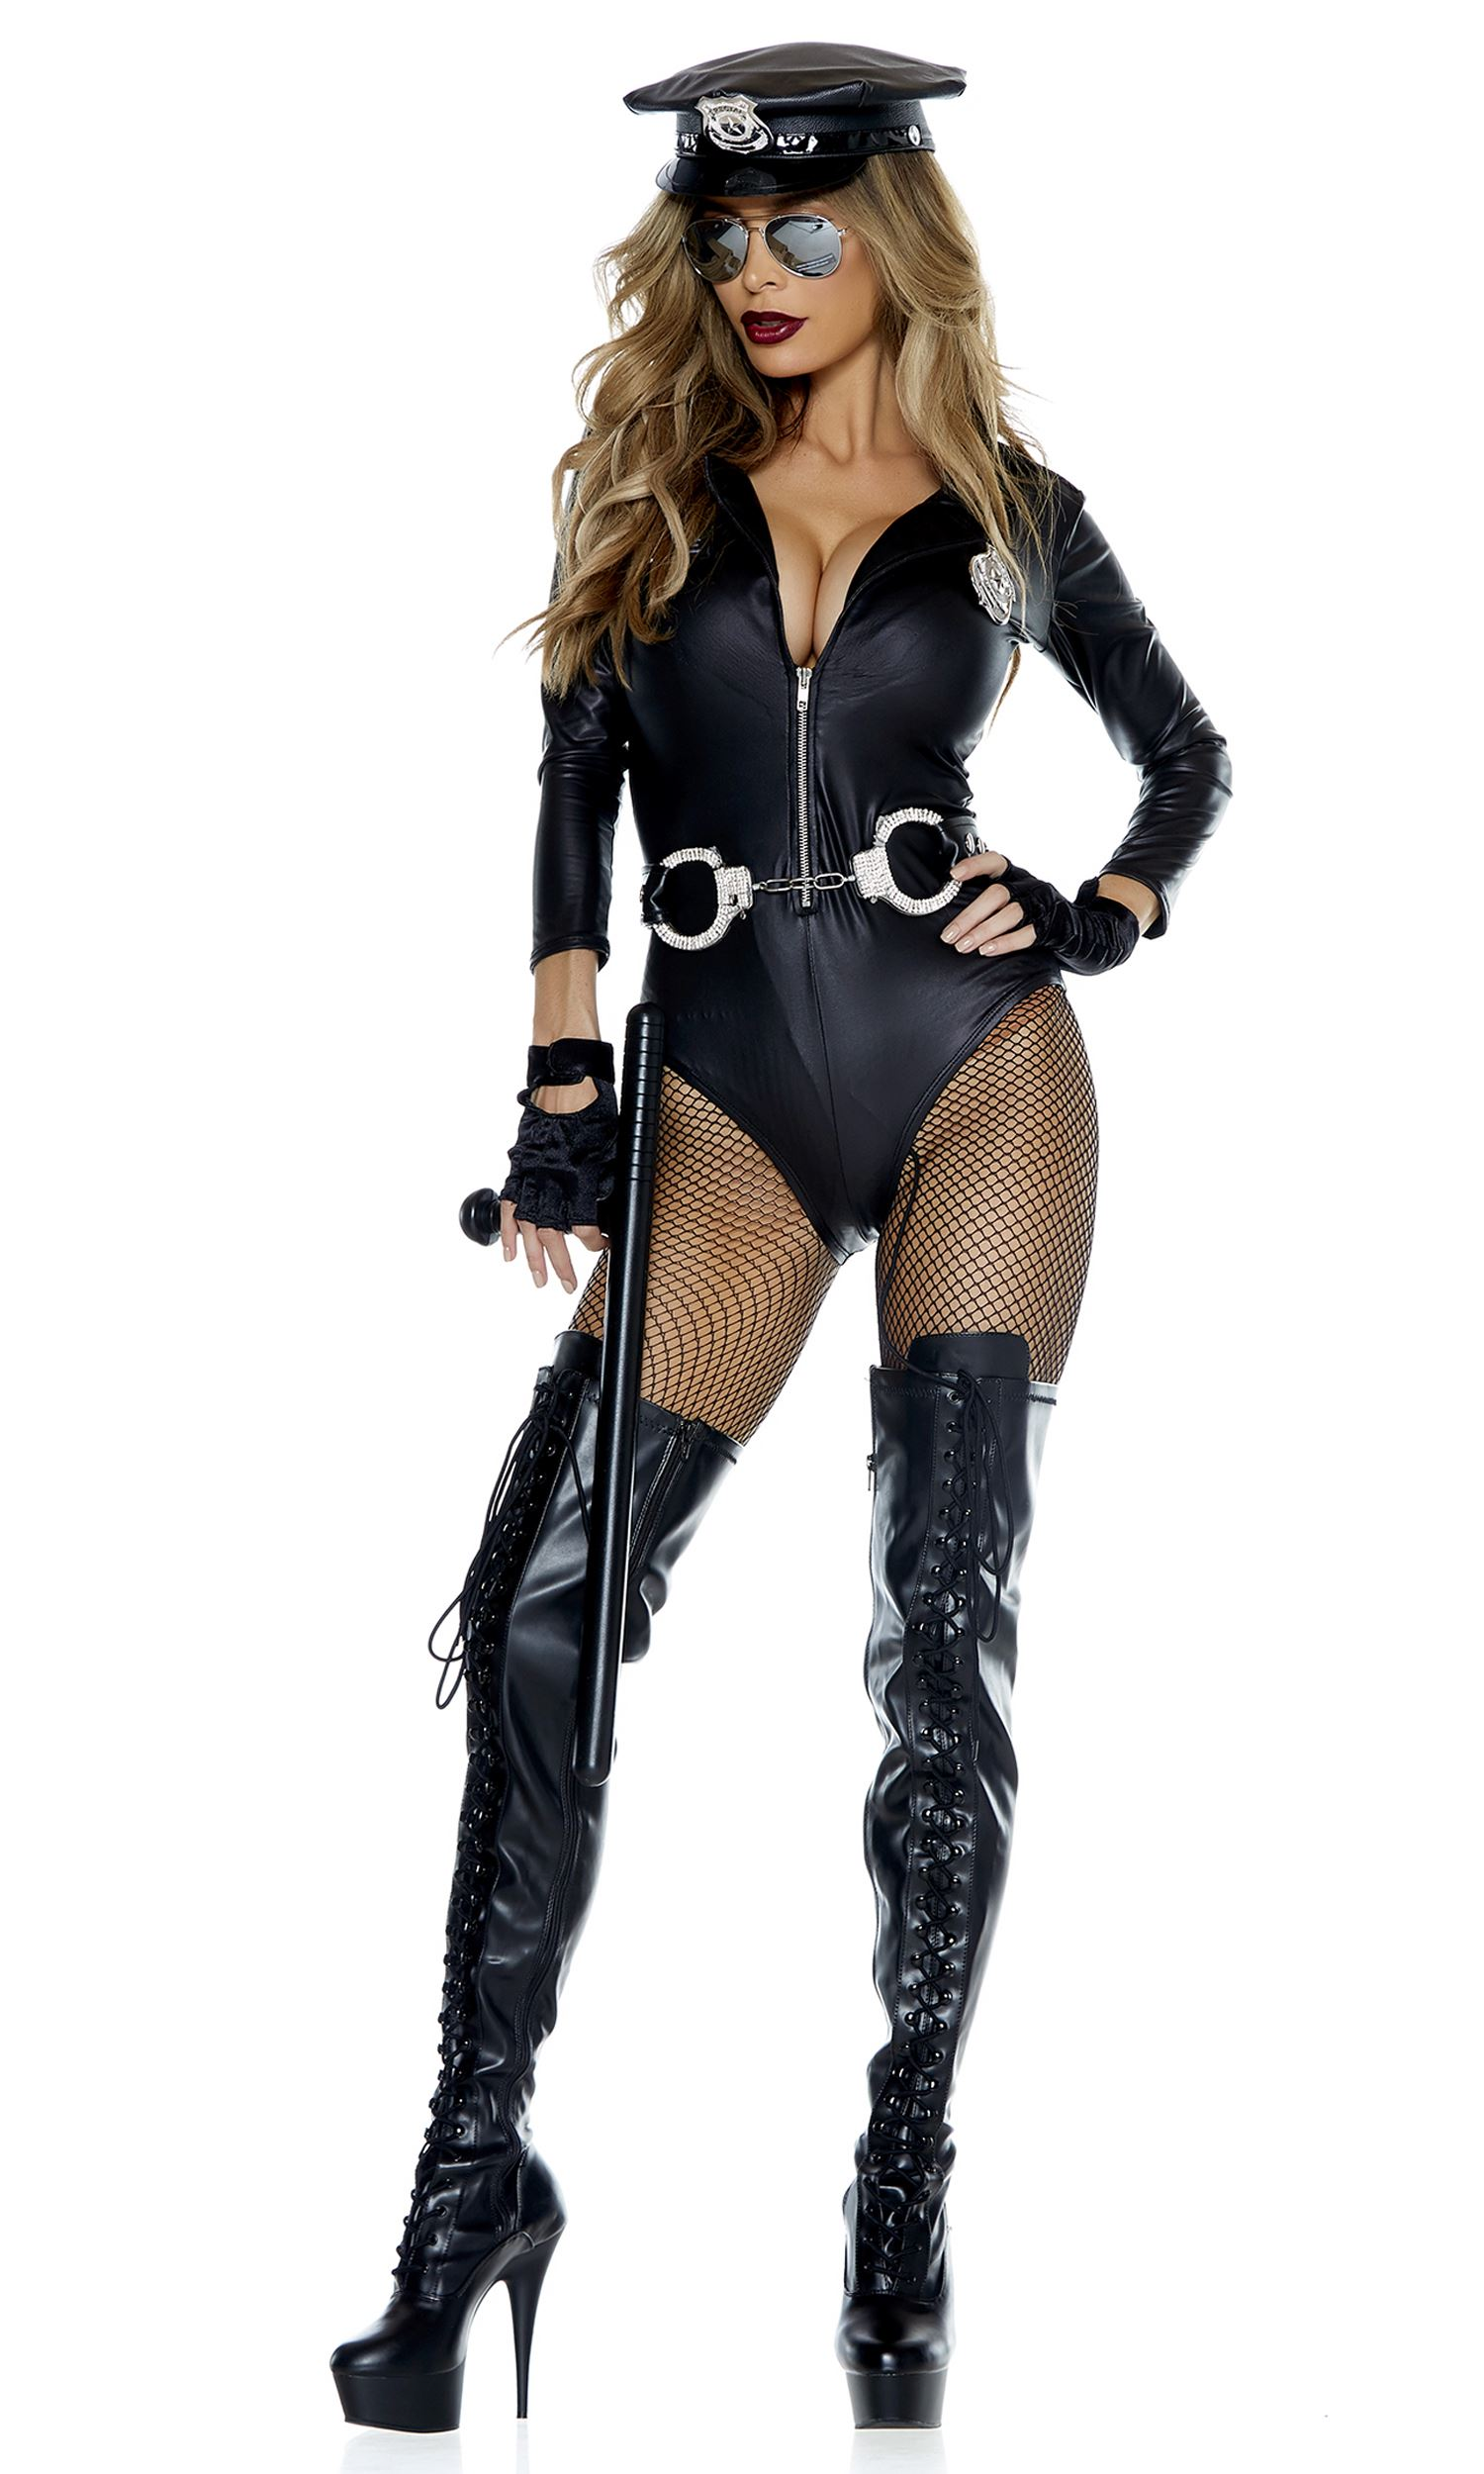 Adult Do Not Cross Cop Woman Costume ...  sc 1 st  The Costume Land & Adult Do Not Cross Cop Woman Costume | $60.99 | The Costume Land